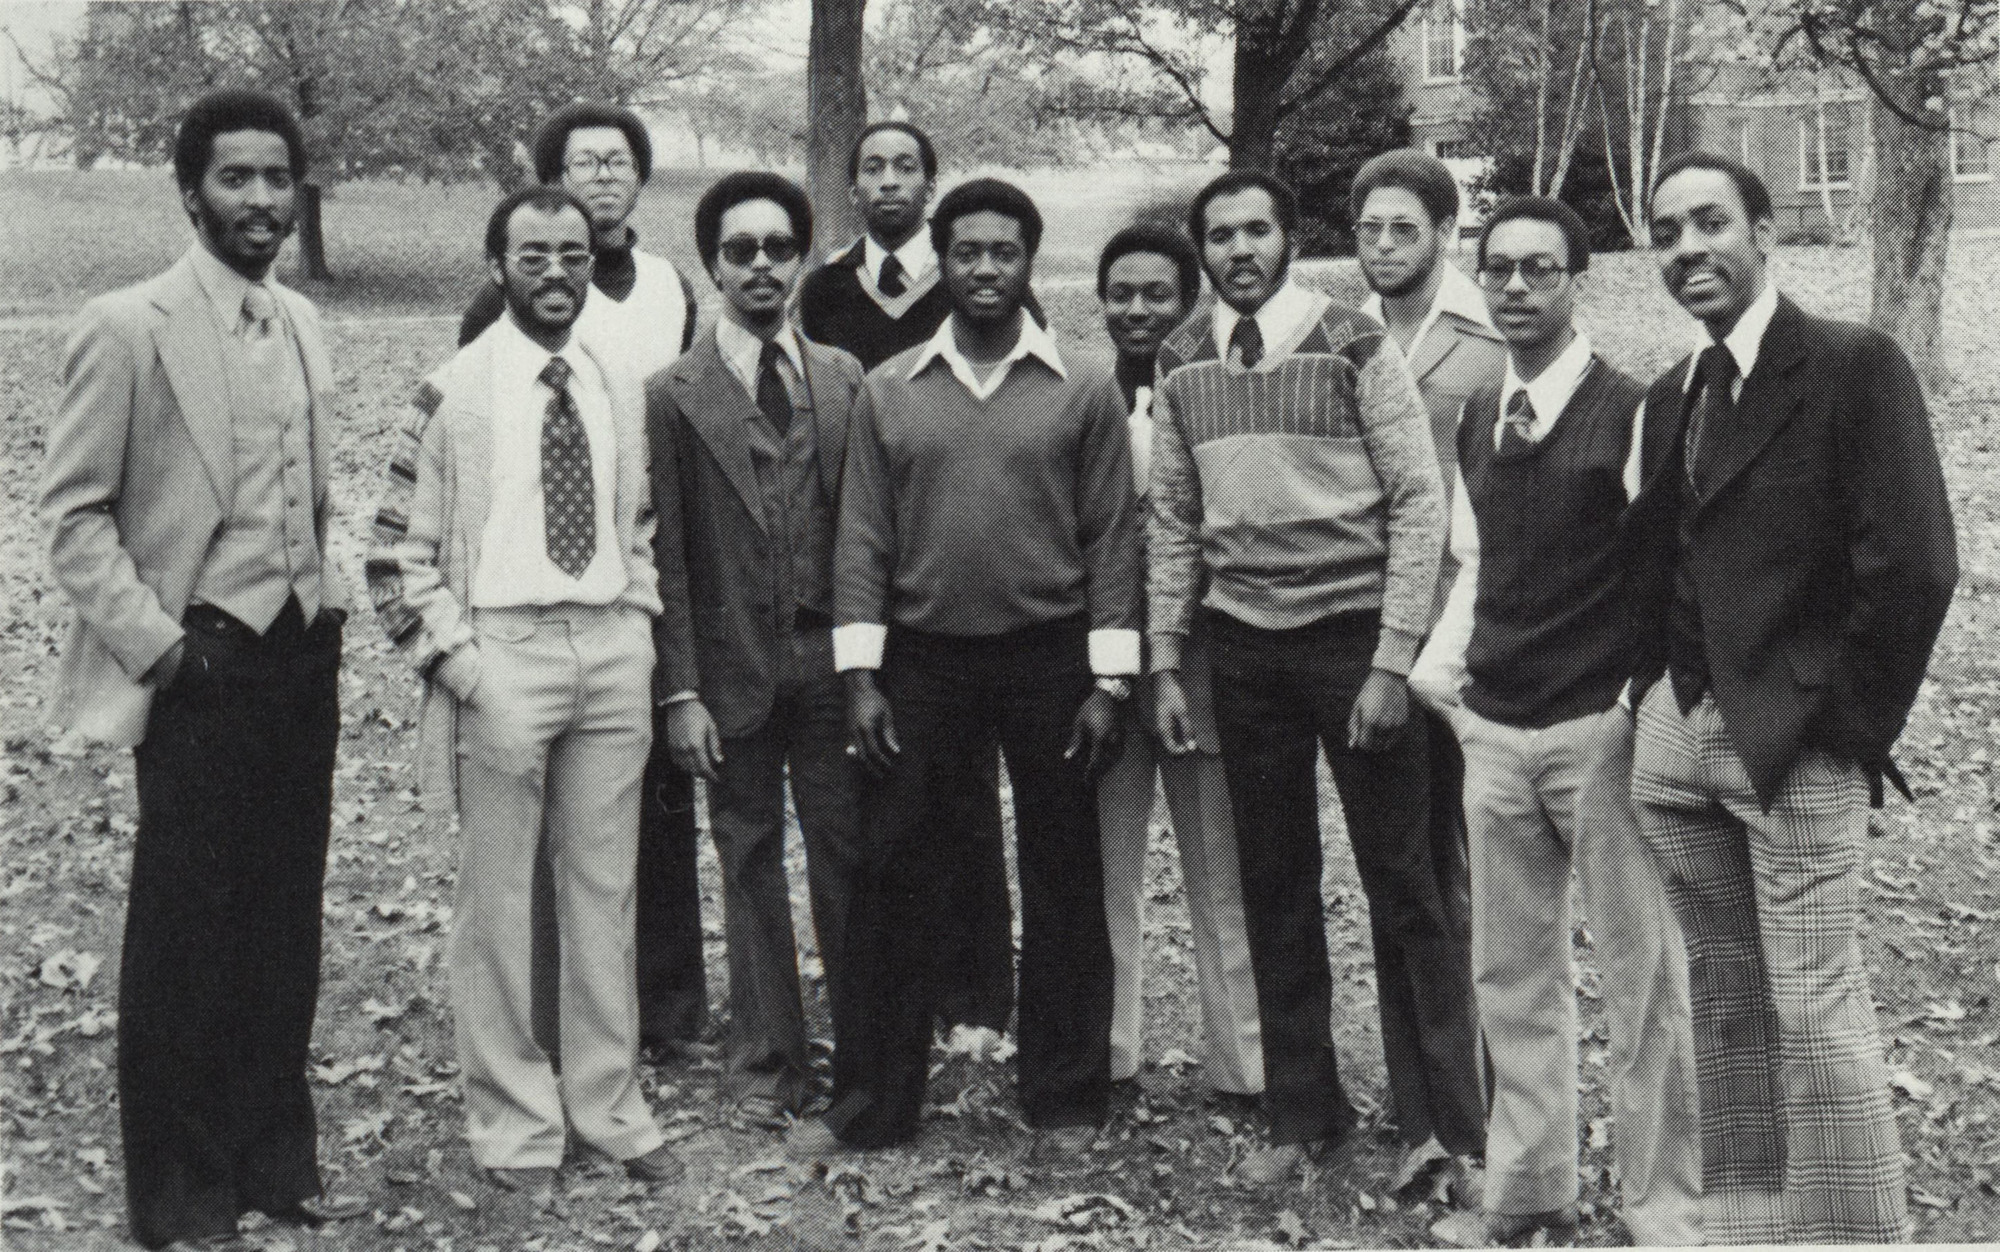 http://spec.lib.vt.edu/pickup/Omeka_upload/AlphaPhiAlpha_1979.jpg